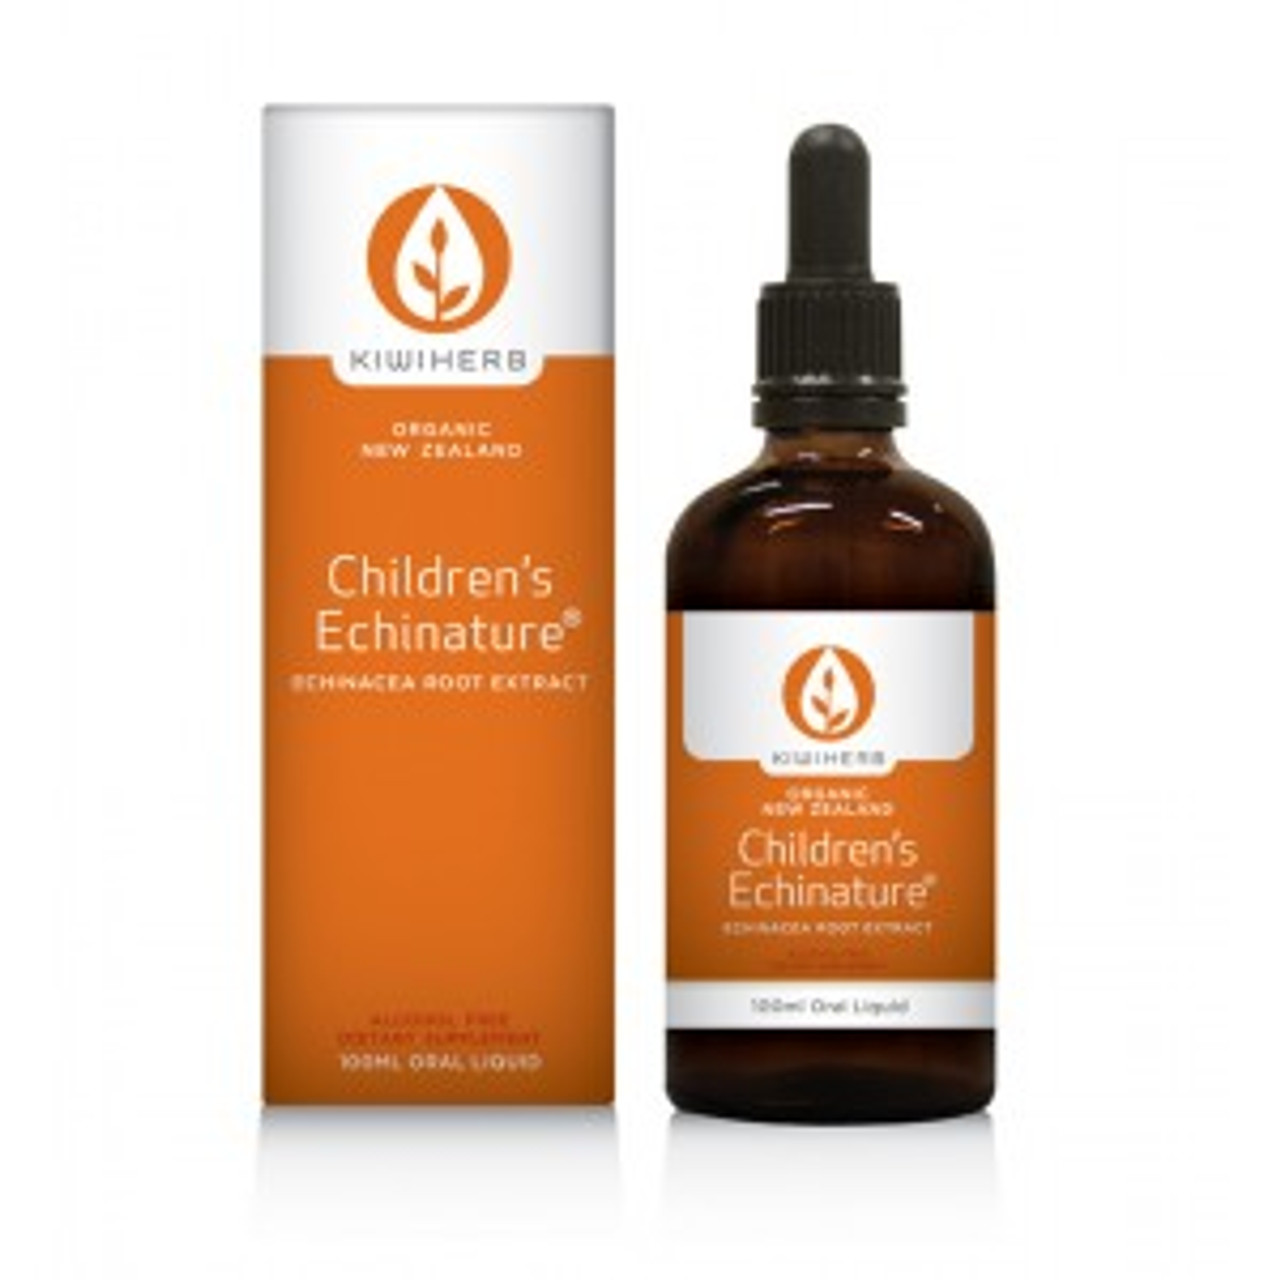 Childrens Echinature- Kiwiherb